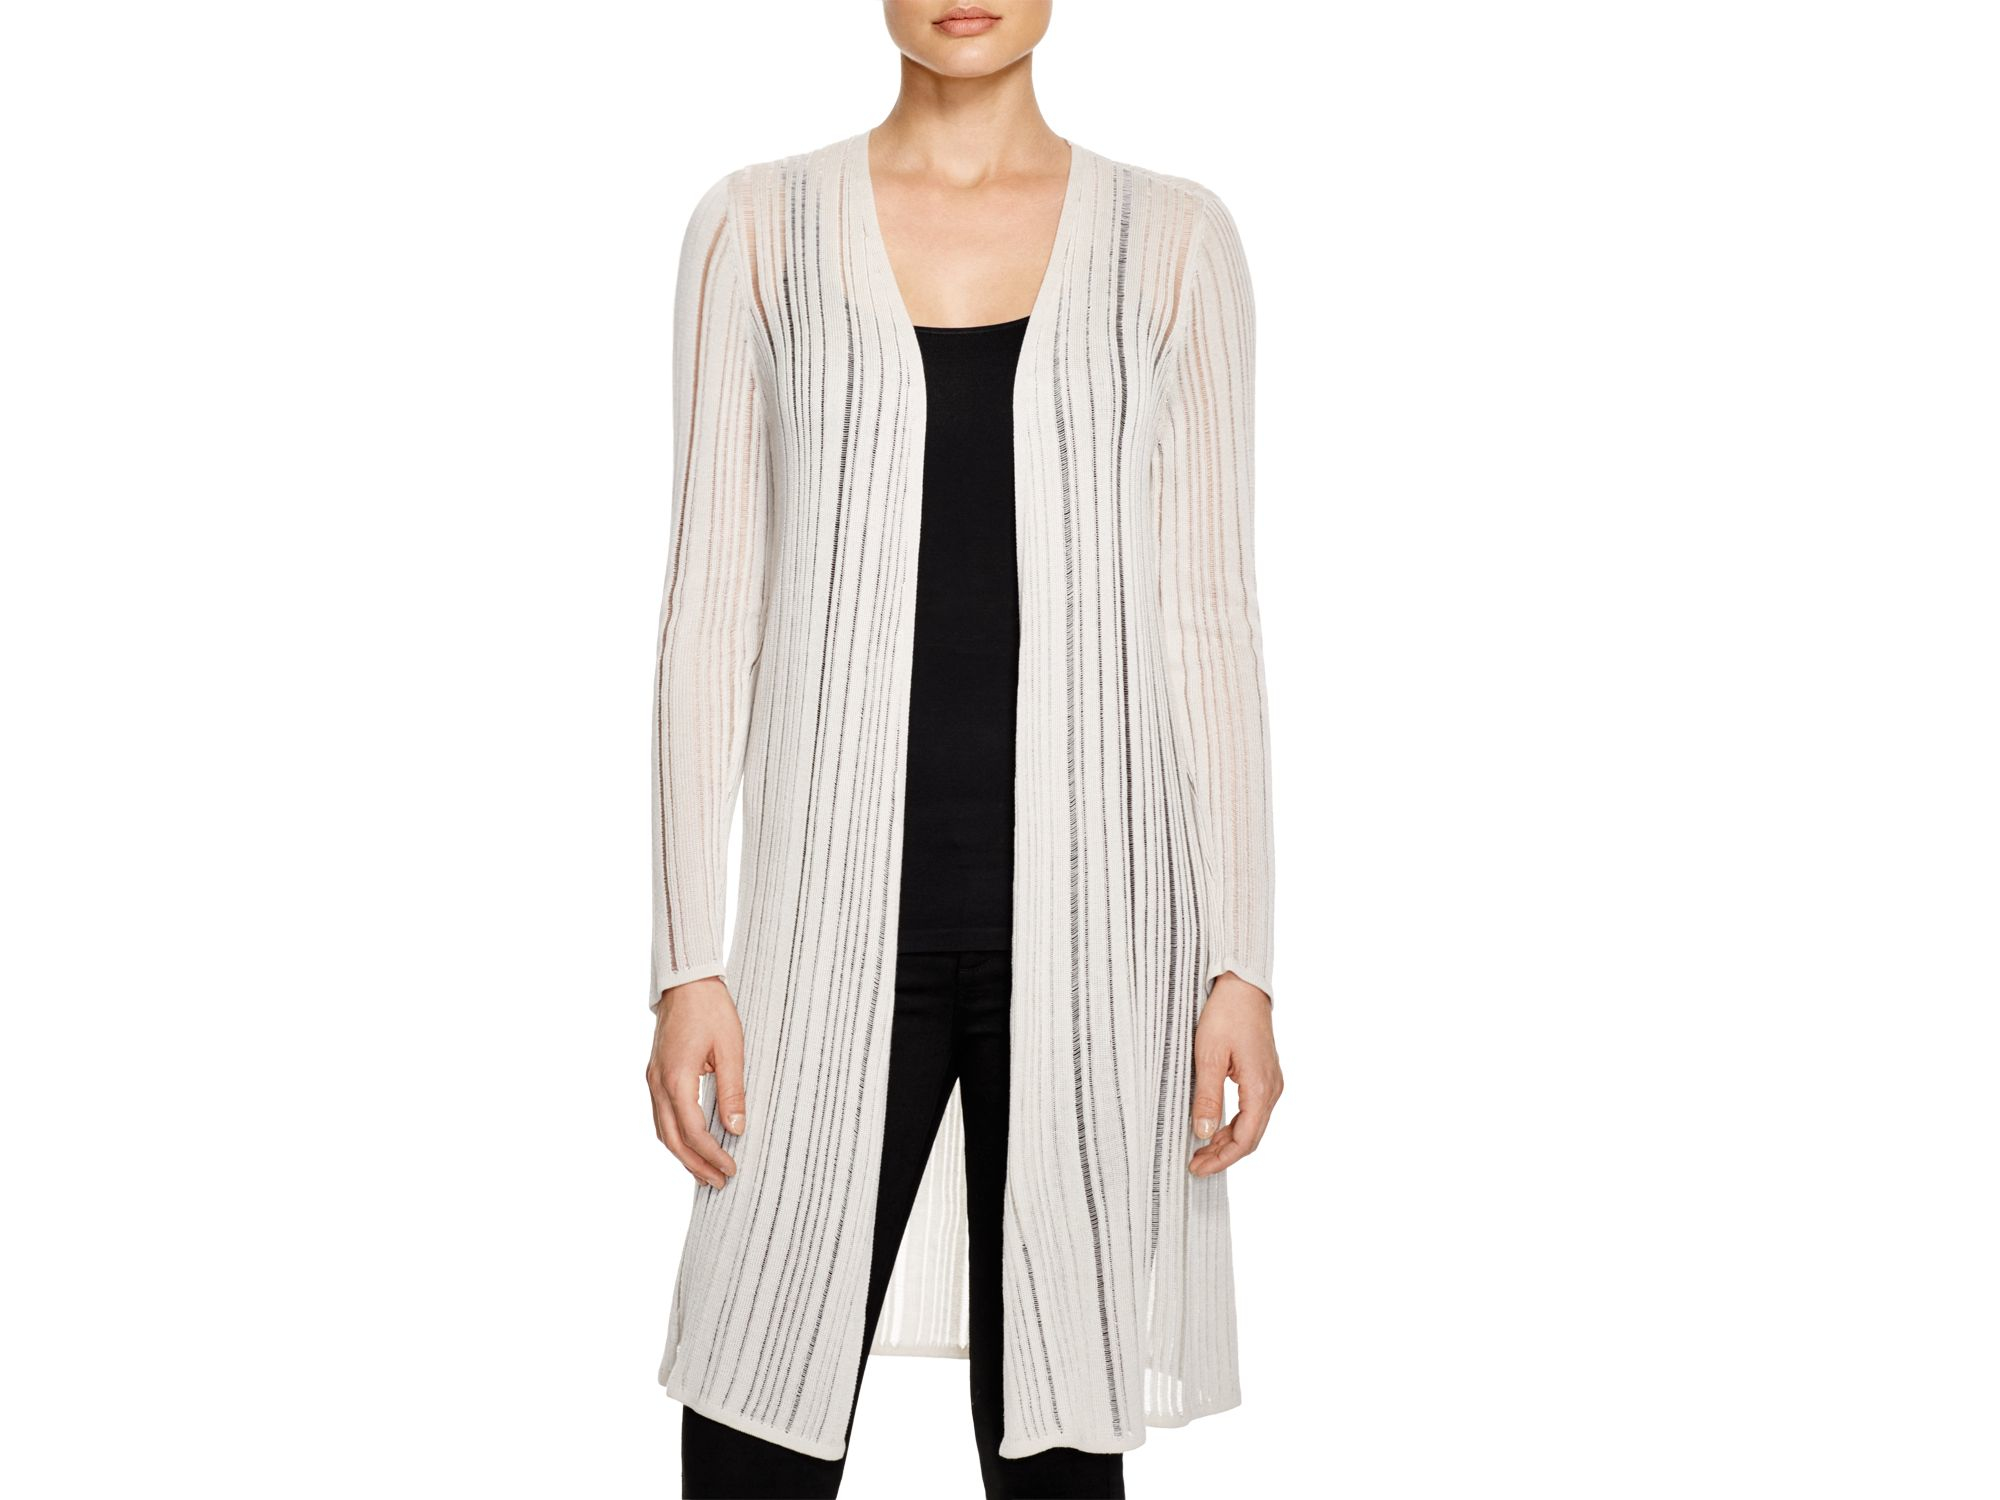 Eileen fisher Sheer Stripe Long Cardigan in Natural | Lyst